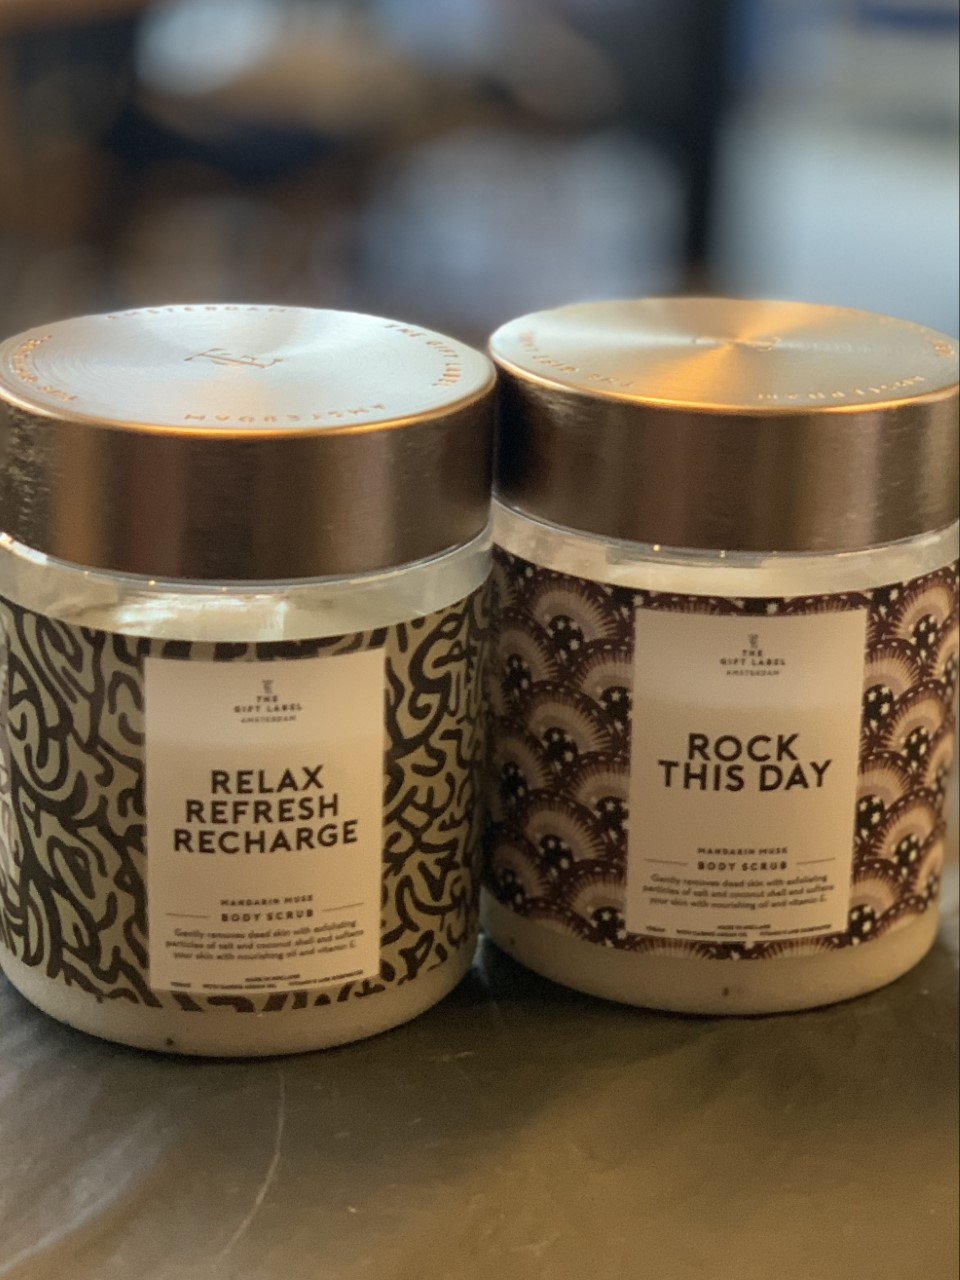 GiftLabel Body scrub Relax Refrech Recharge